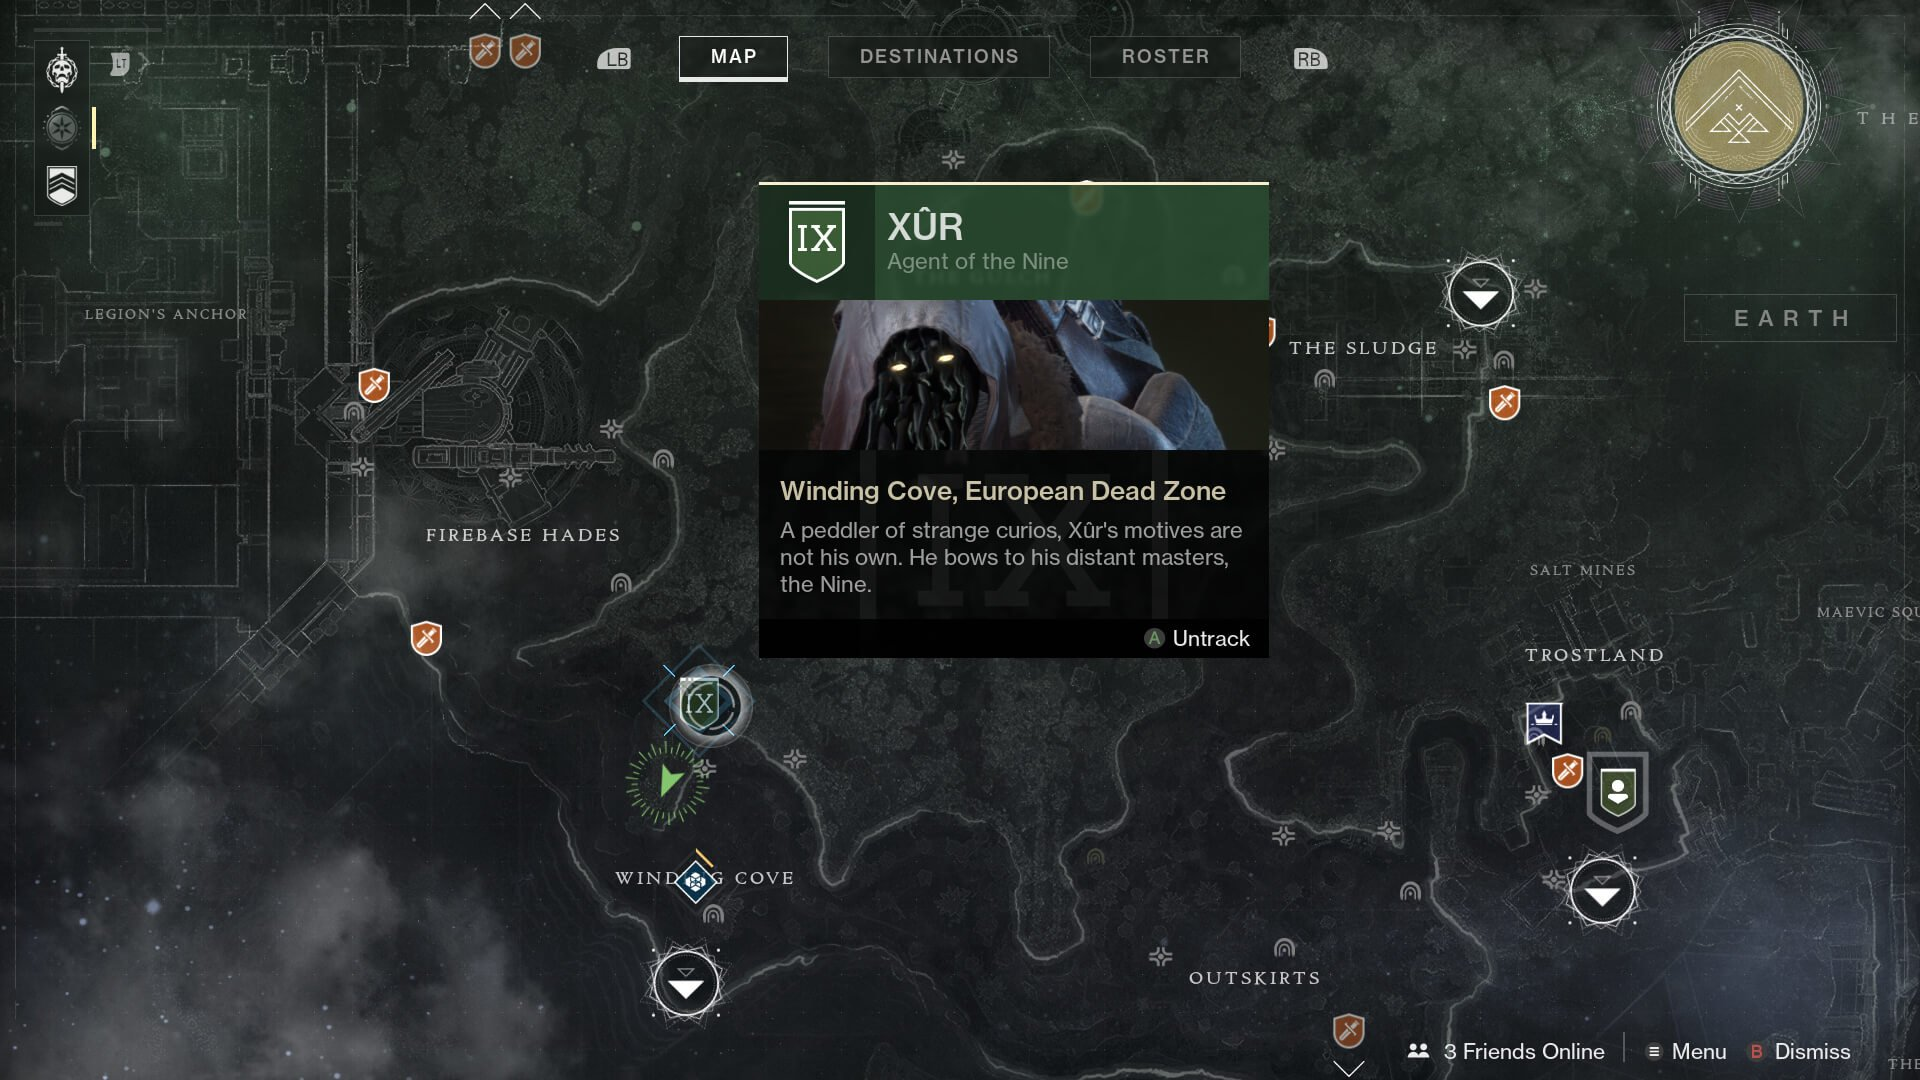 Destiny 2: Xur, Agent of the Nine, location and Exotic gear